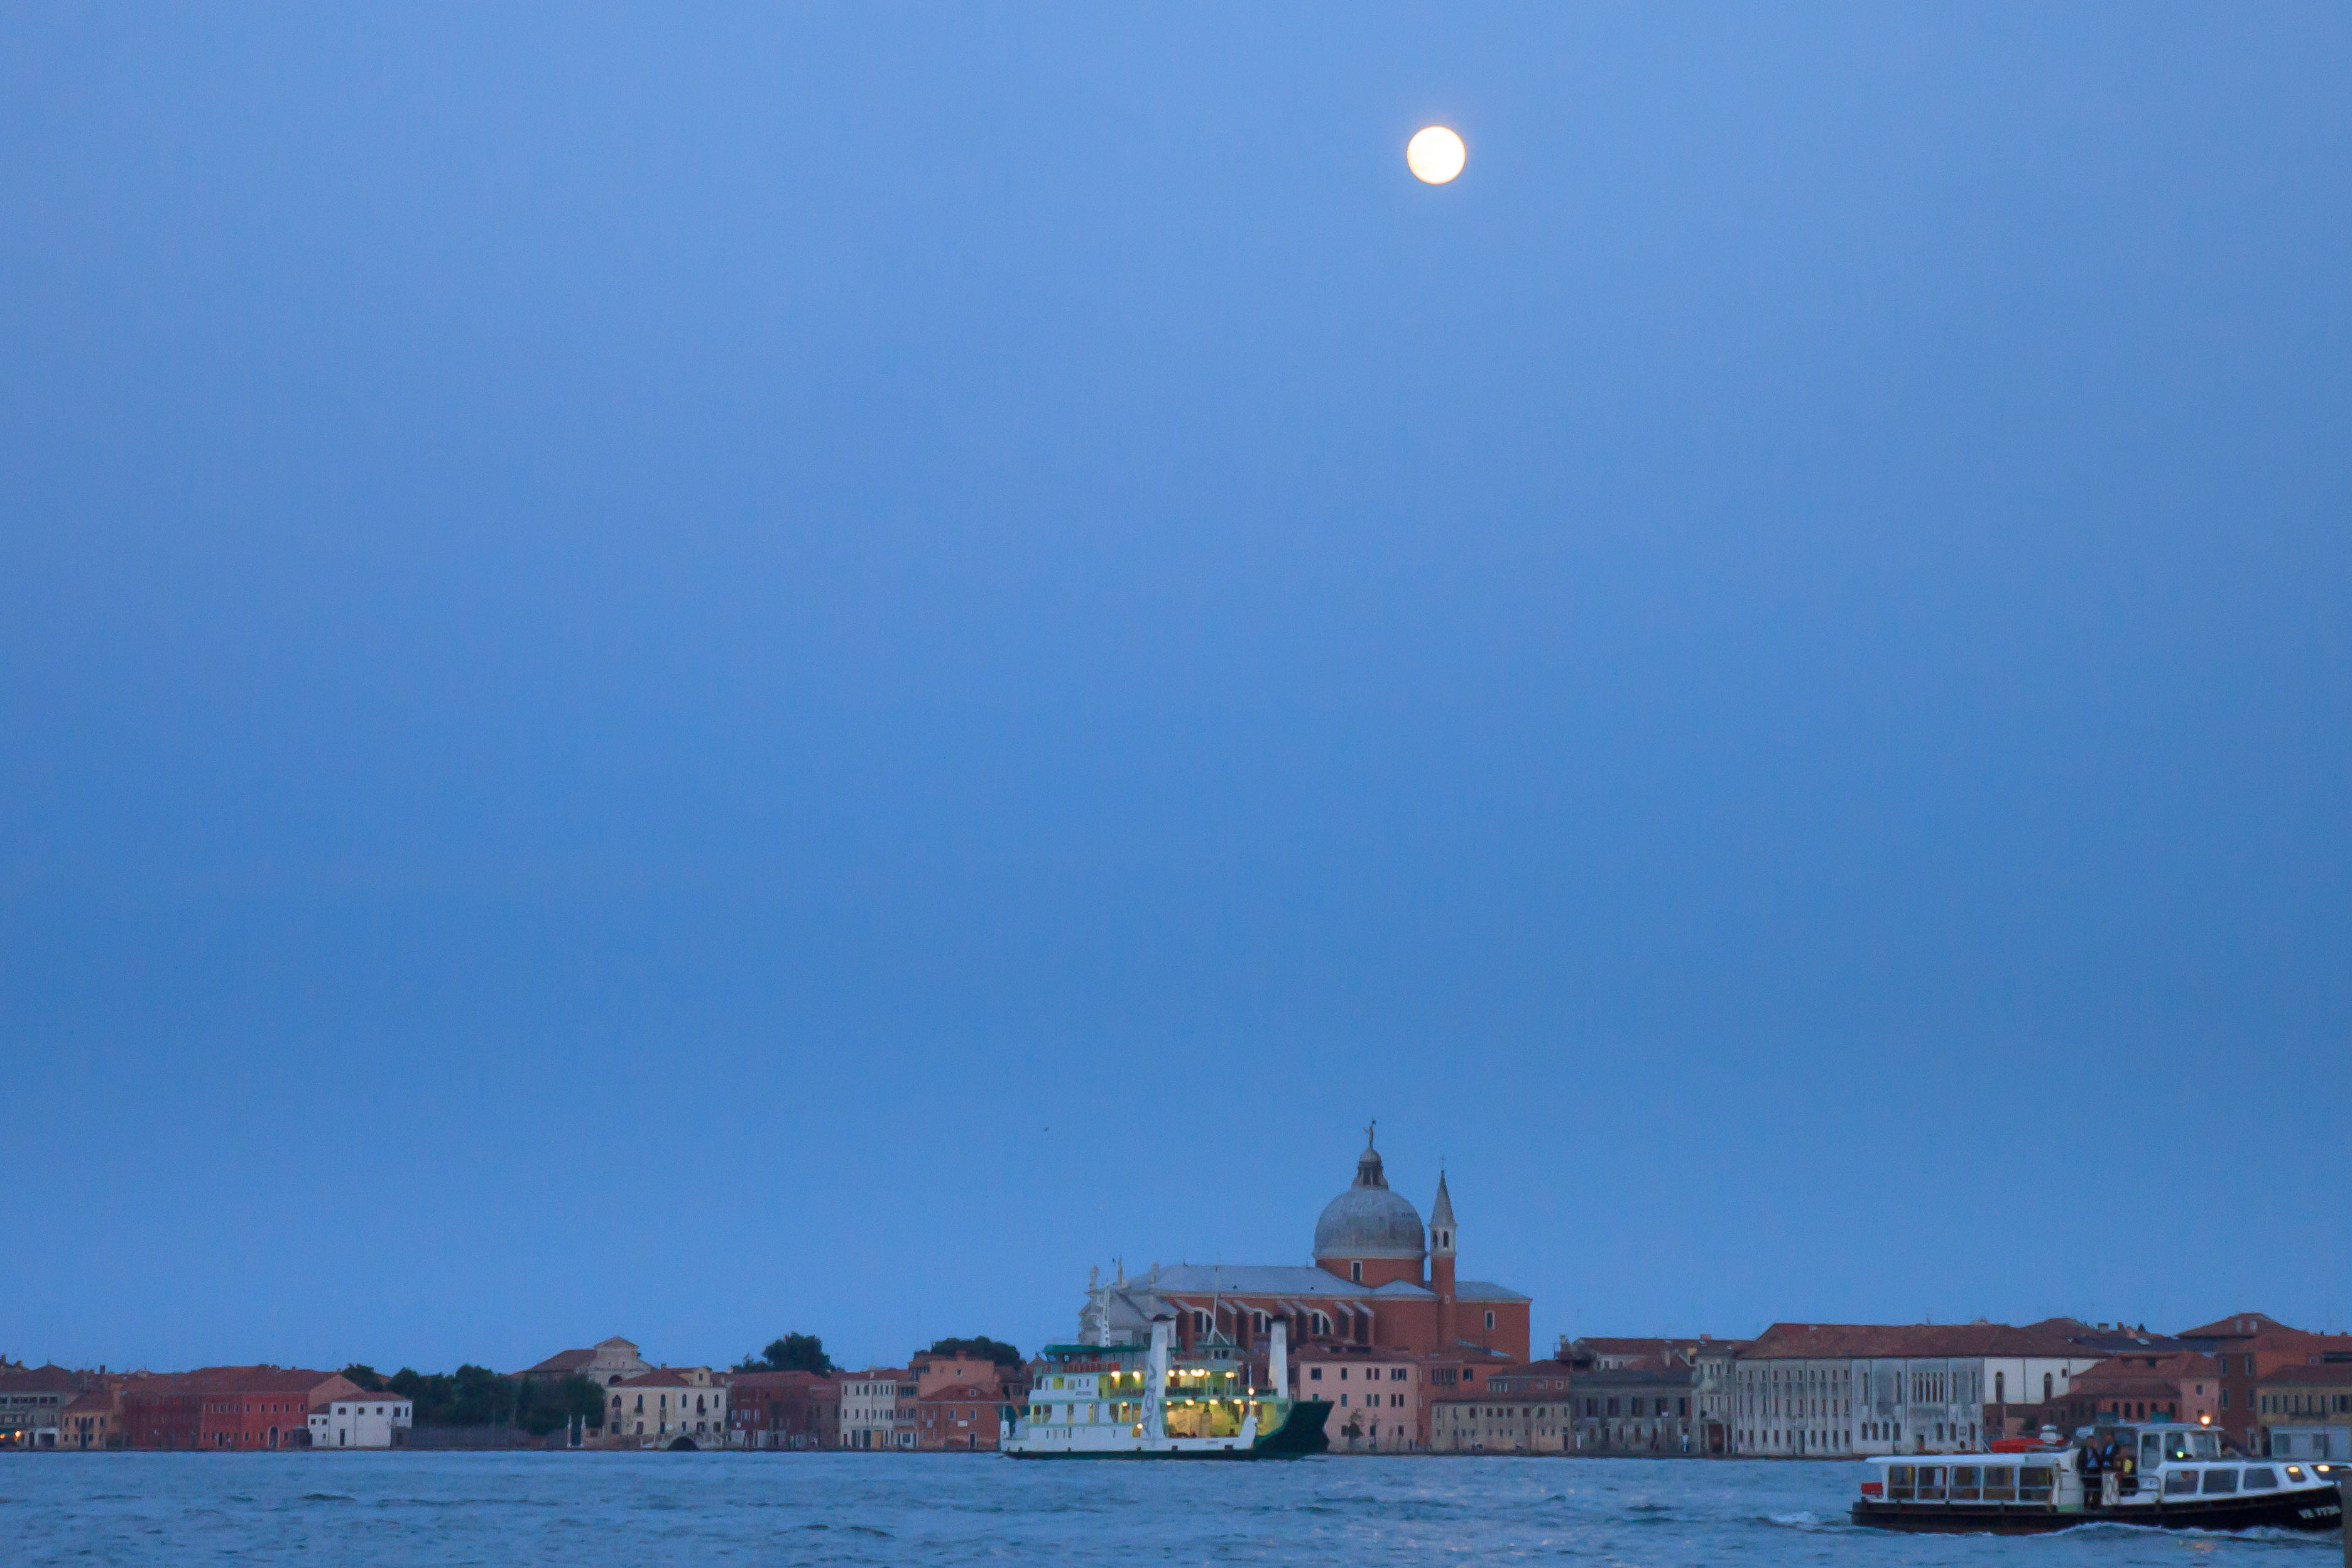 View from Venice across the Canal della Guidecca by moonlight.